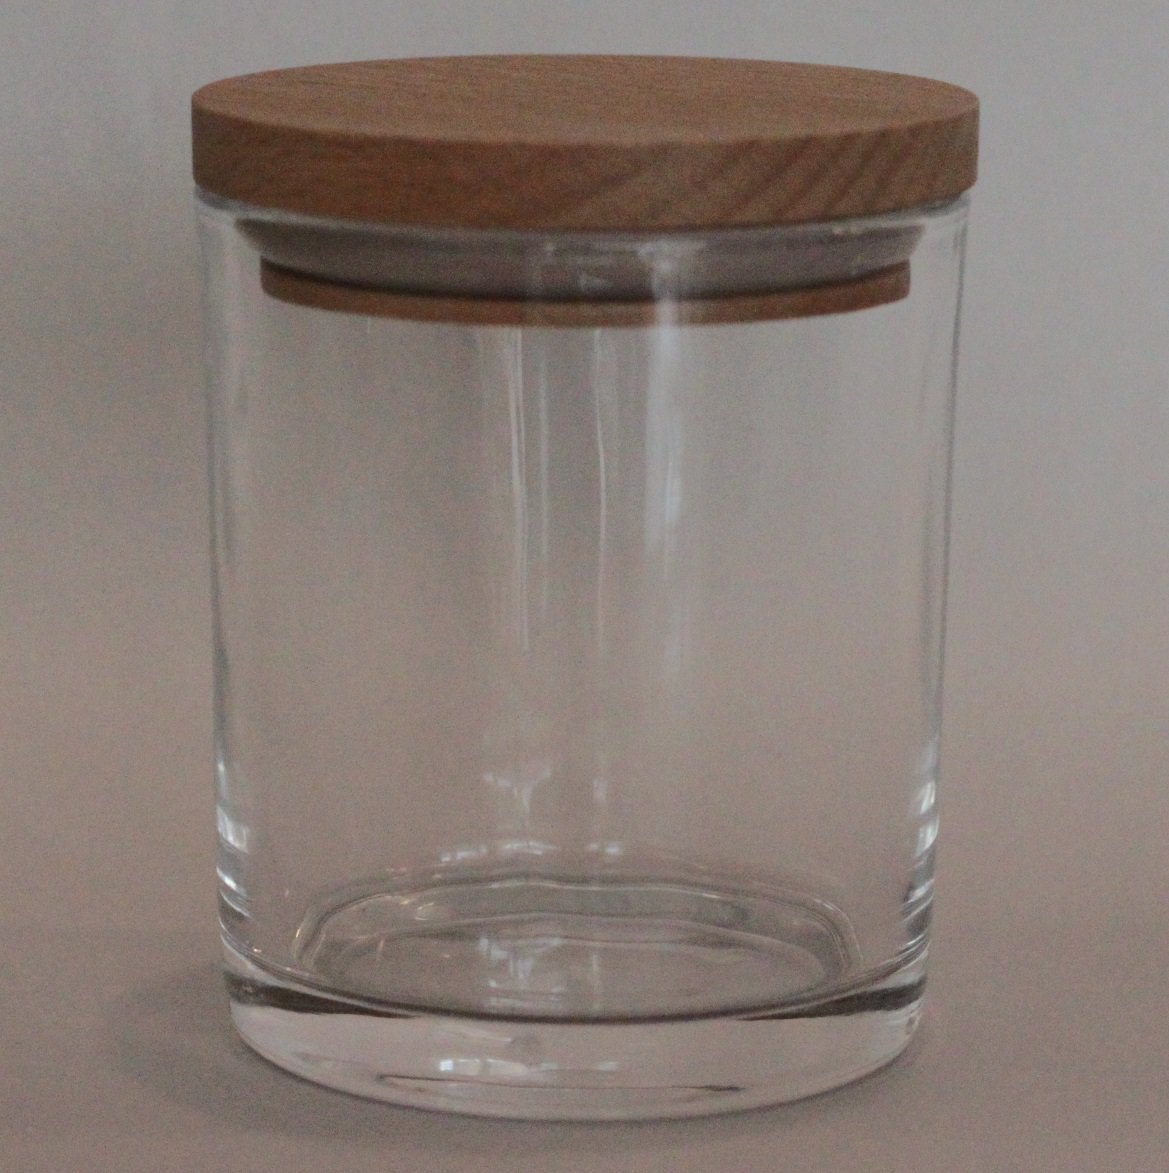 SPECIAL 12 Small-Medium Candle Glass - Clear/Beech Lid